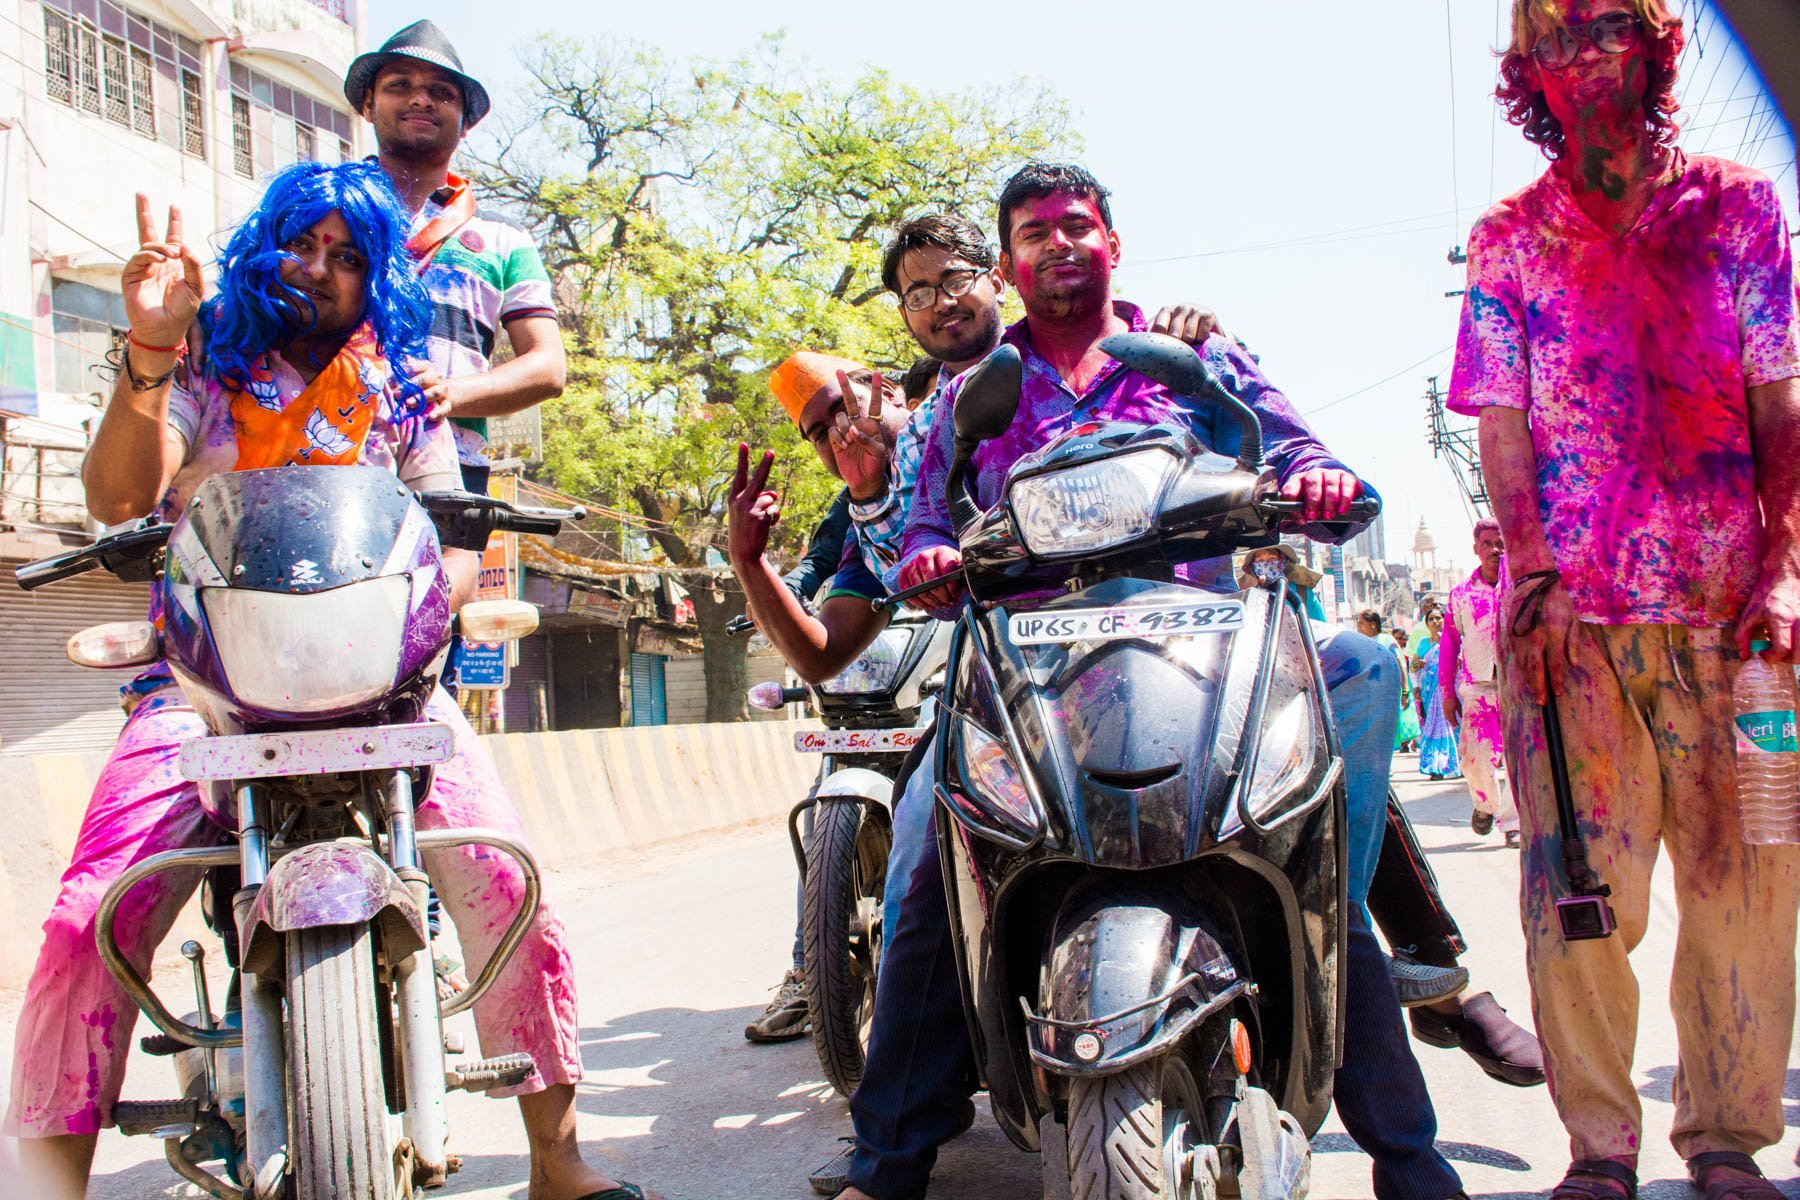 Celebrating Holi in Varanasi as a Female - Jolly drunks on motorbike during Holi in Varanasi - Lost With Purpose